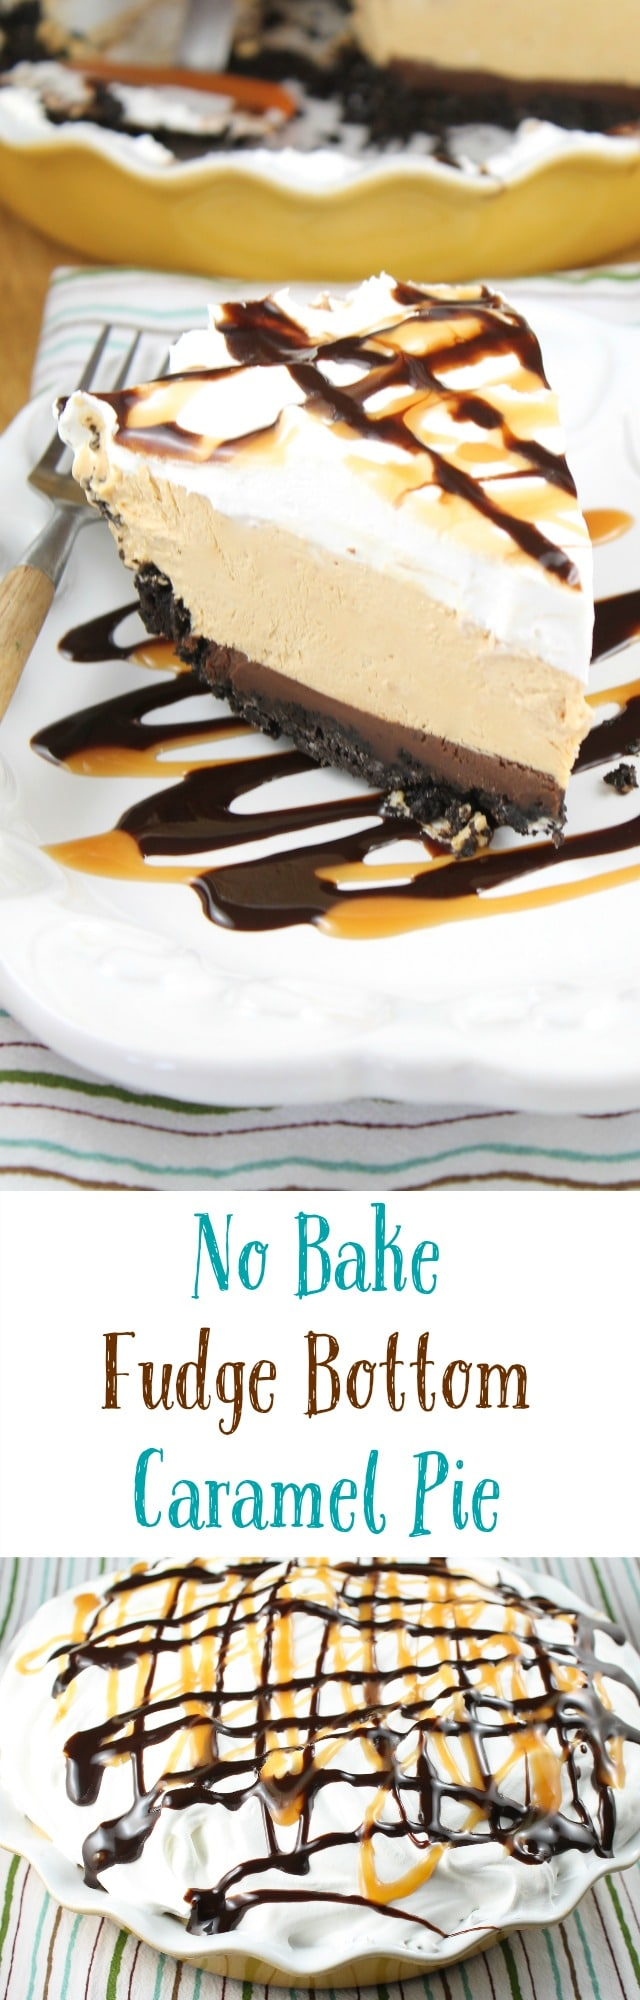 No Bake Fudge Bottom Caramel Pie Recipe found at missinthekitchen.com #WayfairPieBakeOff